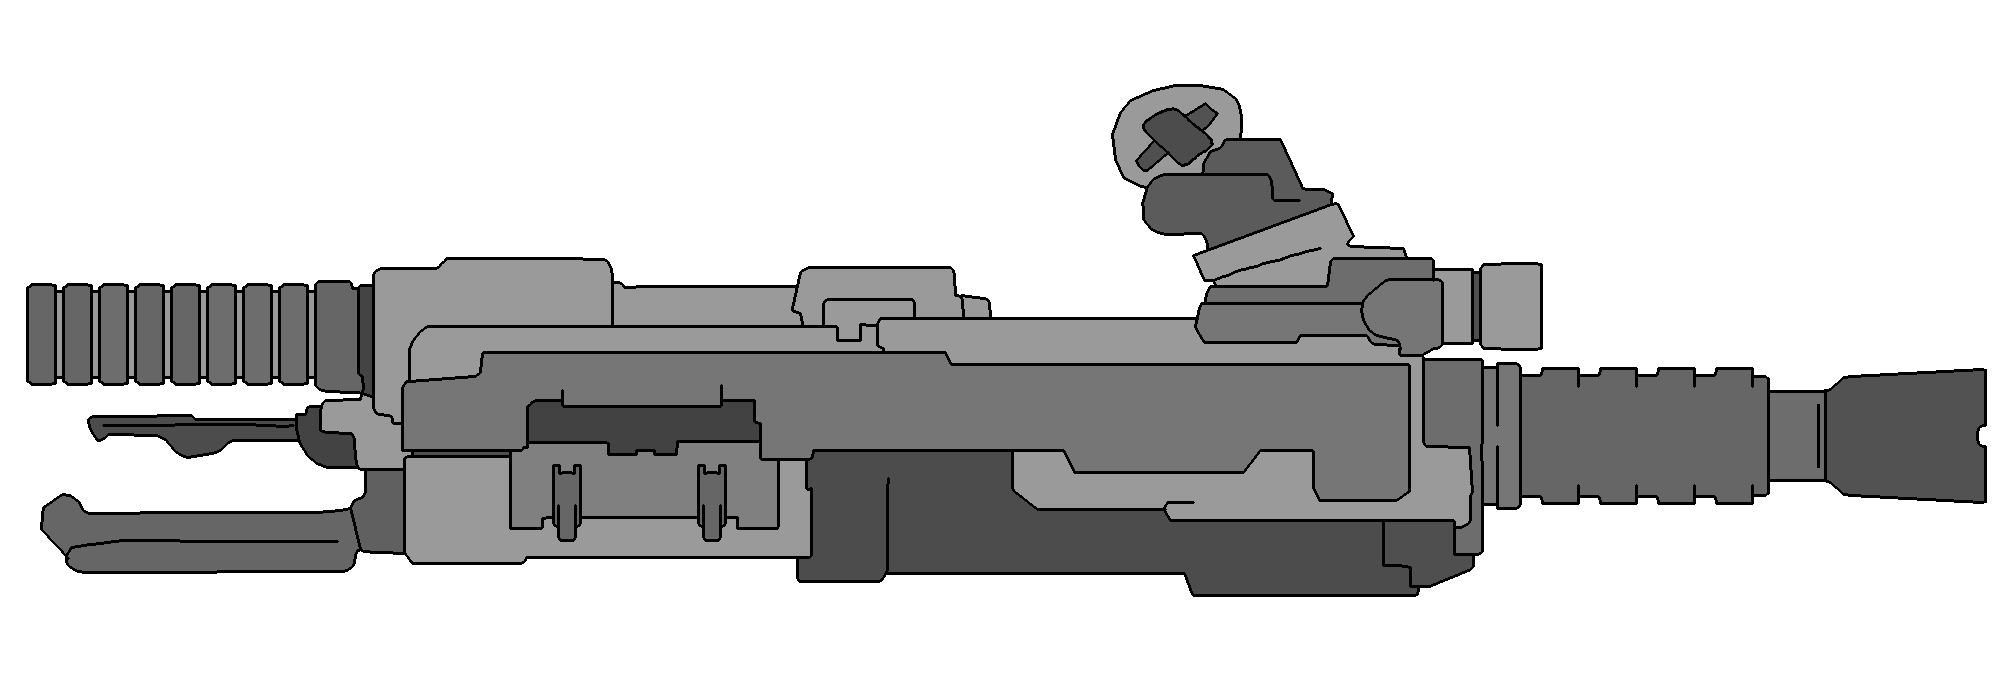 FIC-01 Flechette Cannon on Star Army Space Roleplay